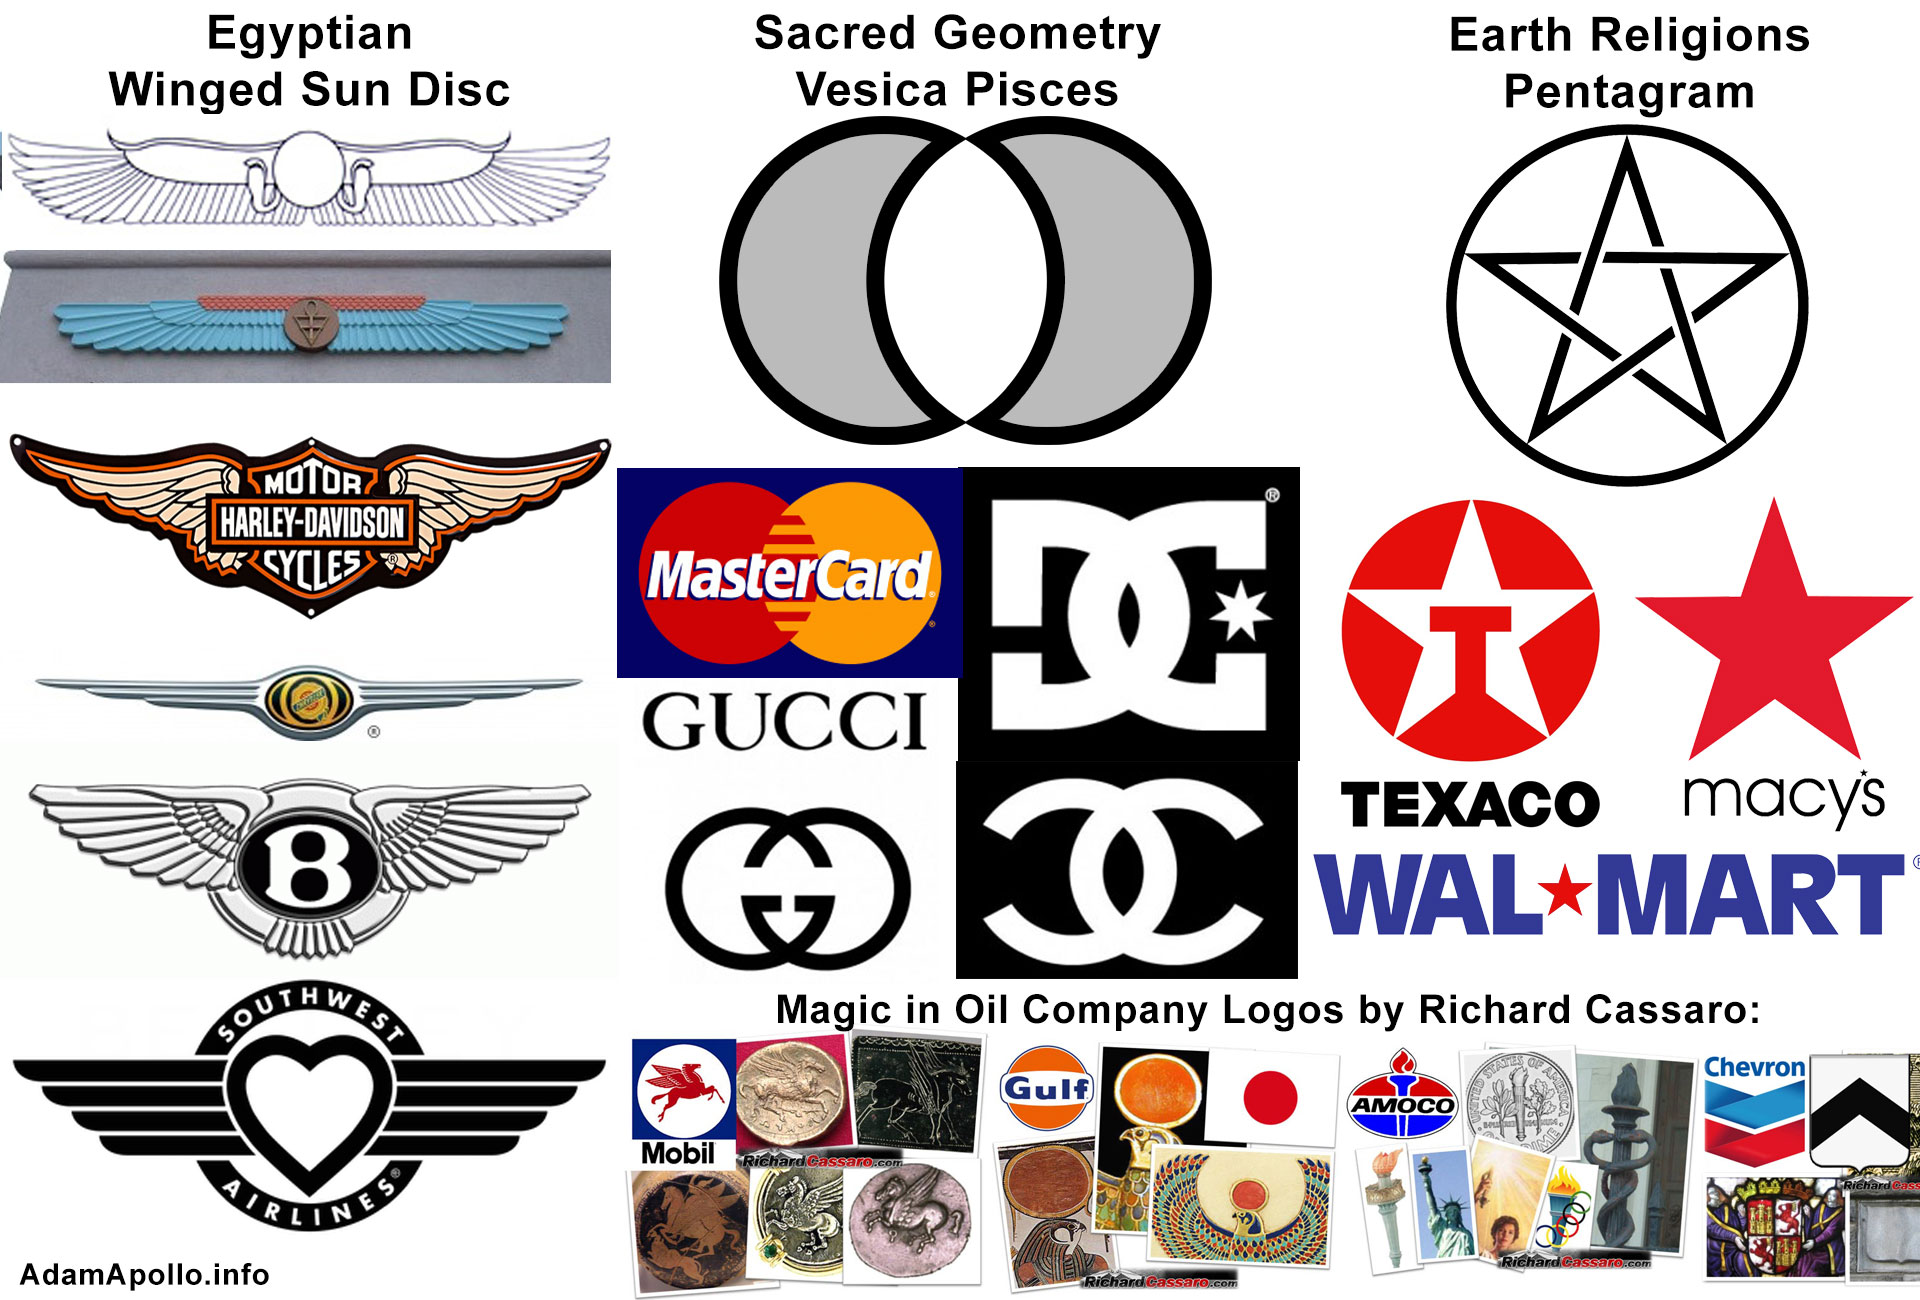 Guardian alliance how magic is used on you every day guardian magical symbols in corporate logos biocorpaavc